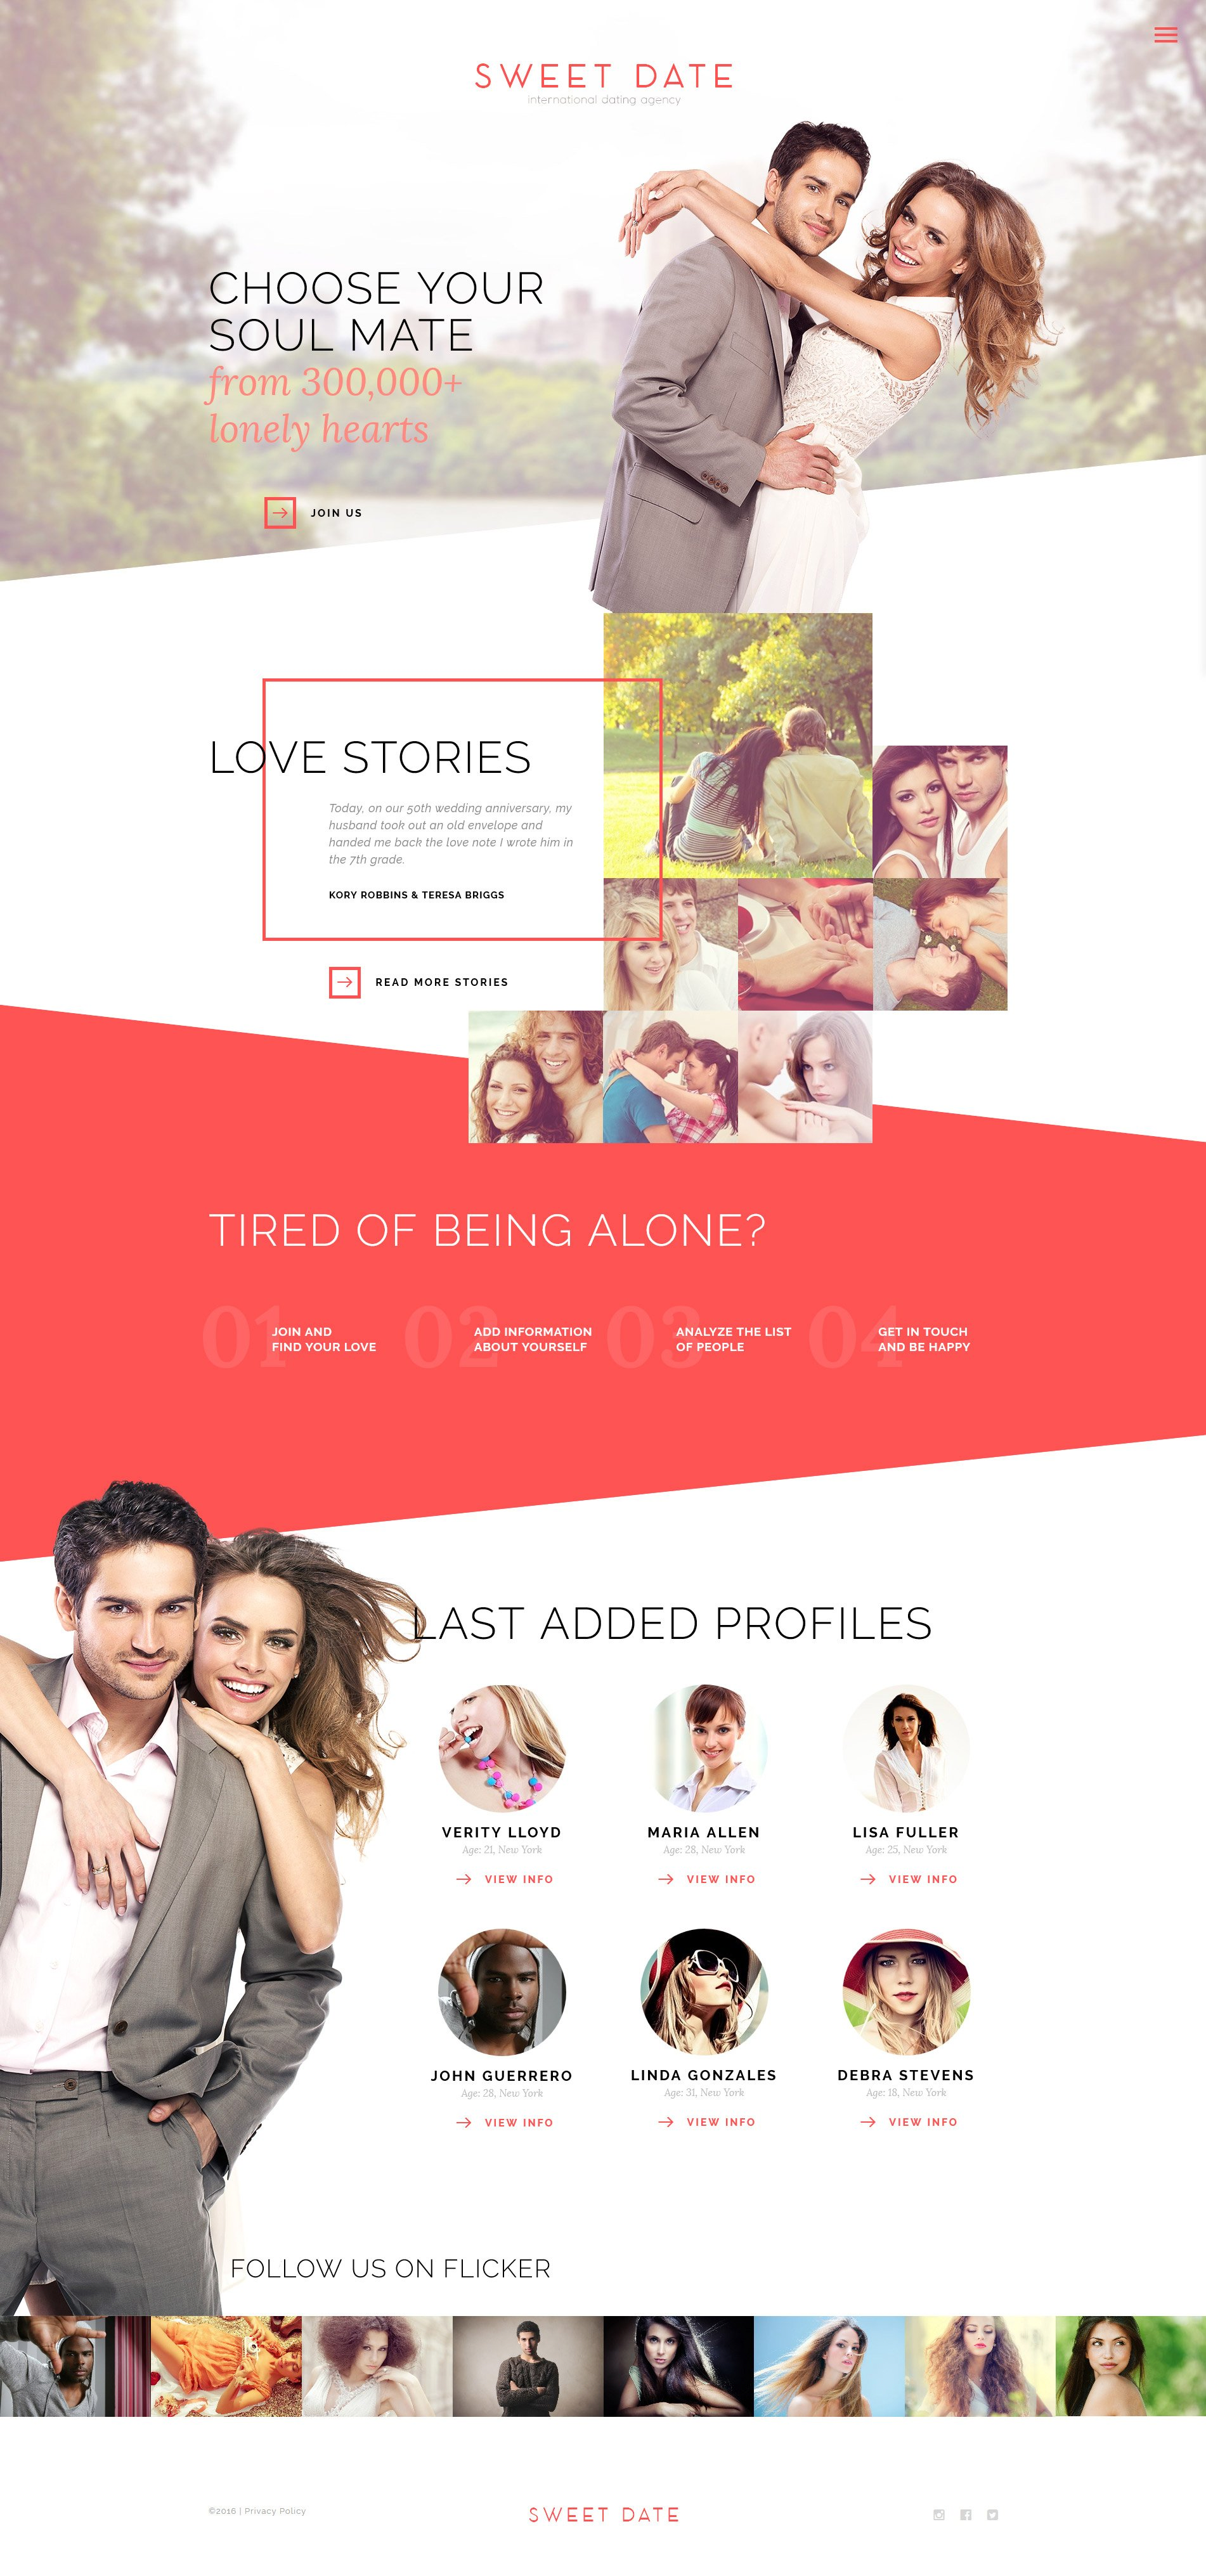 dating us sites What sets us apart as an online dating service how is the color code different from other dating site personality tests unlike sites that don't give you control over your own dating experience, the color code helps you learn how to build stronger and deeper relationships with the people you choose to meet.